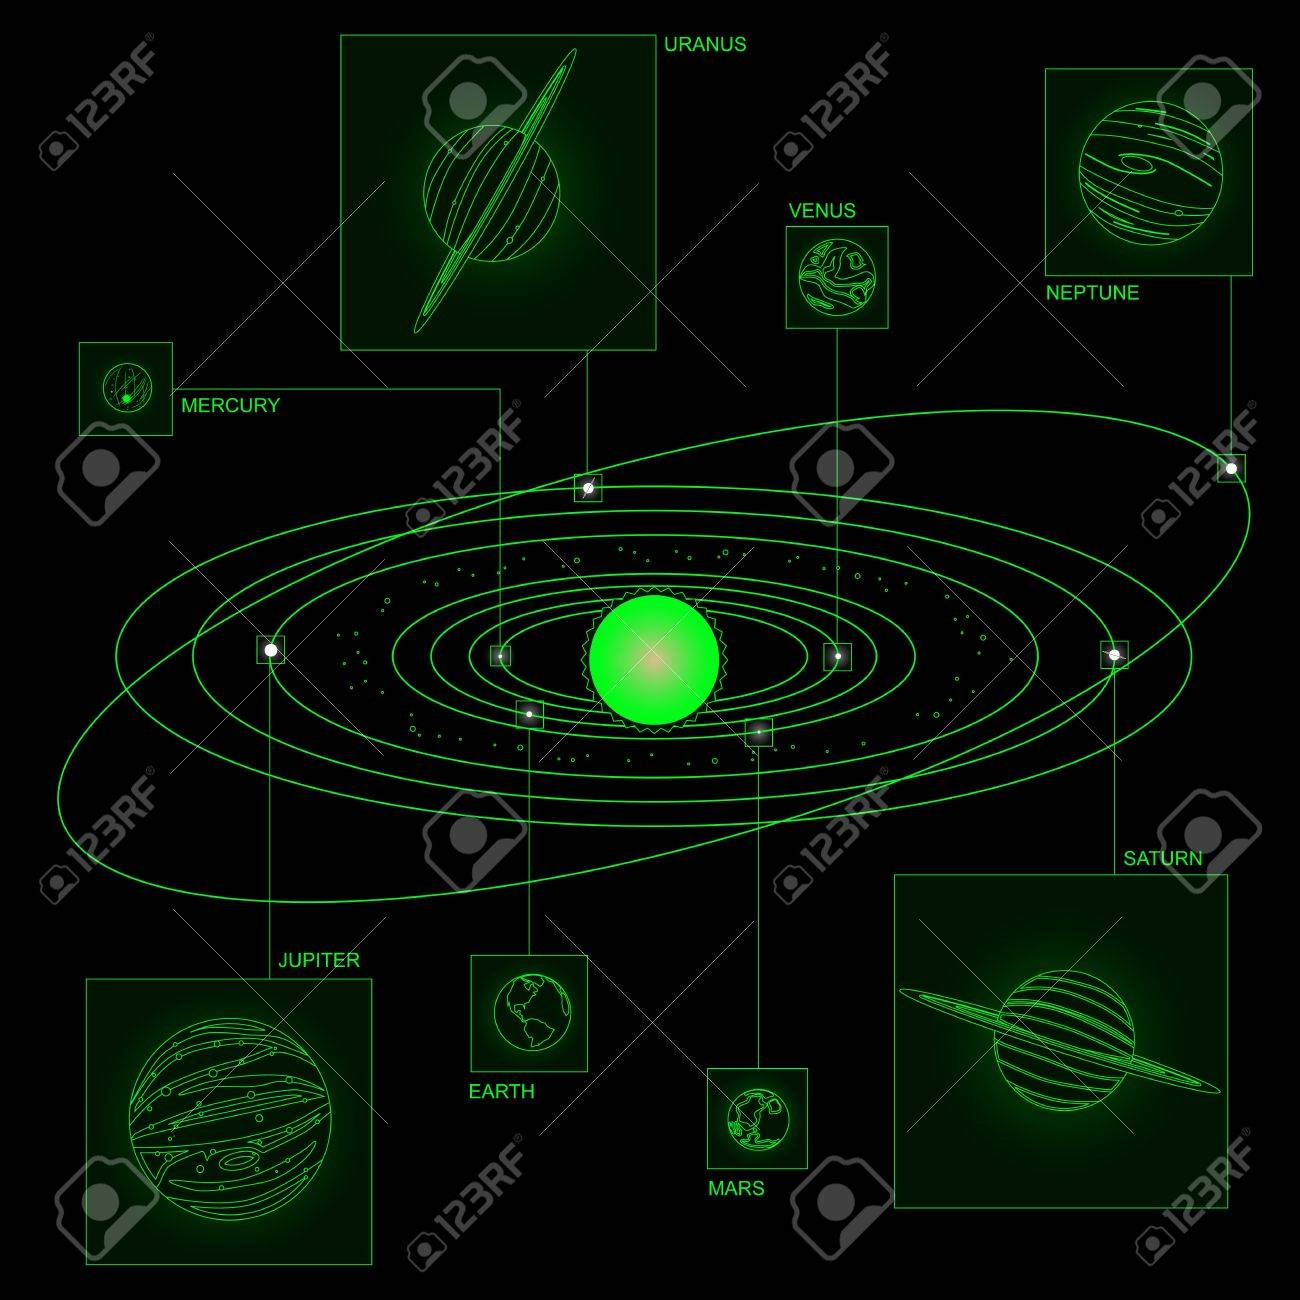 Solar system diagram in wireframe style royalty free cliparts solar system diagram in wireframe style stock vector 15548803 ccuart Image collections